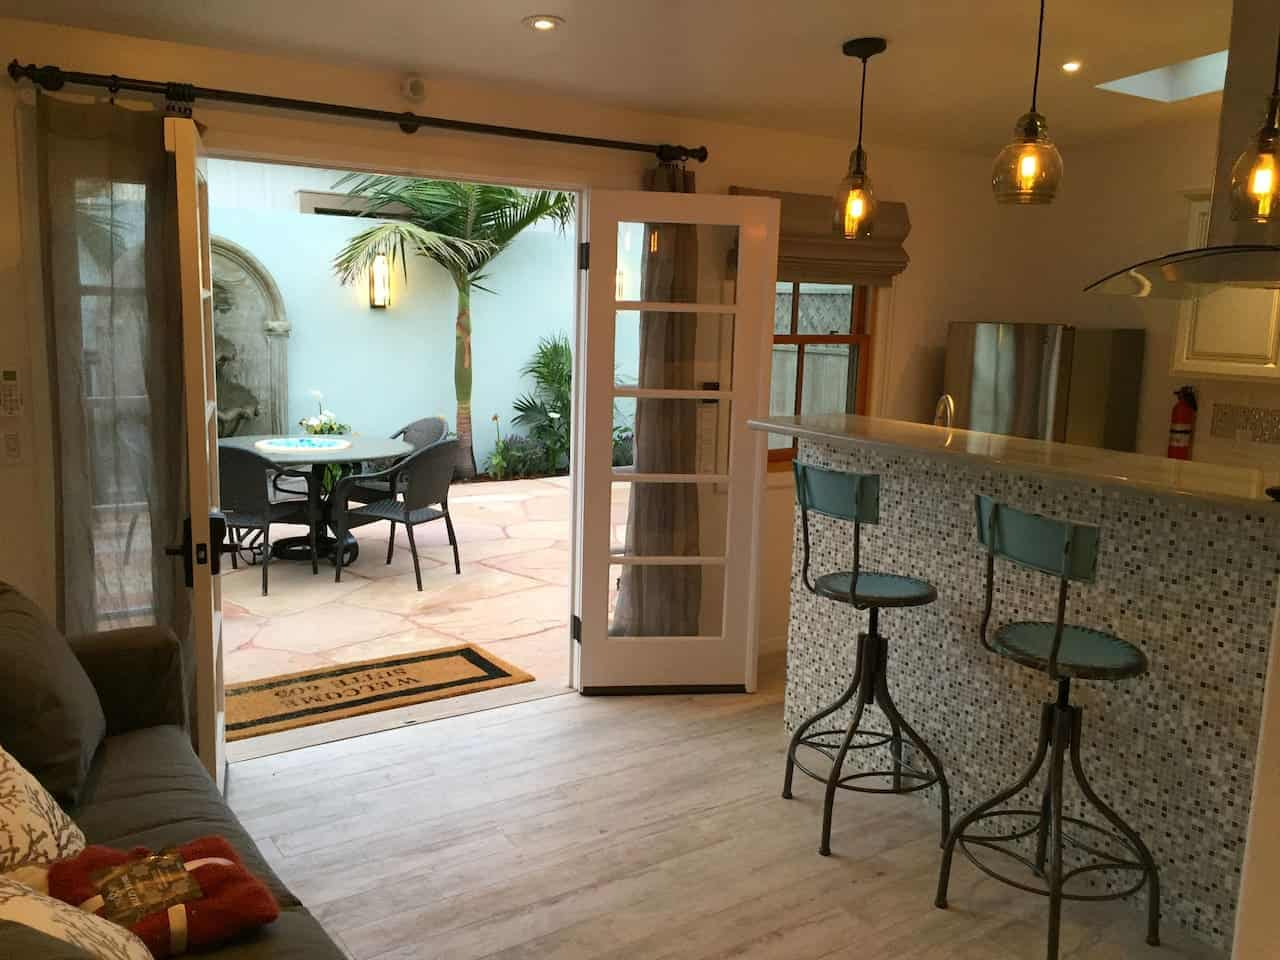 Image of Airbnb rental in Santa Barbara California